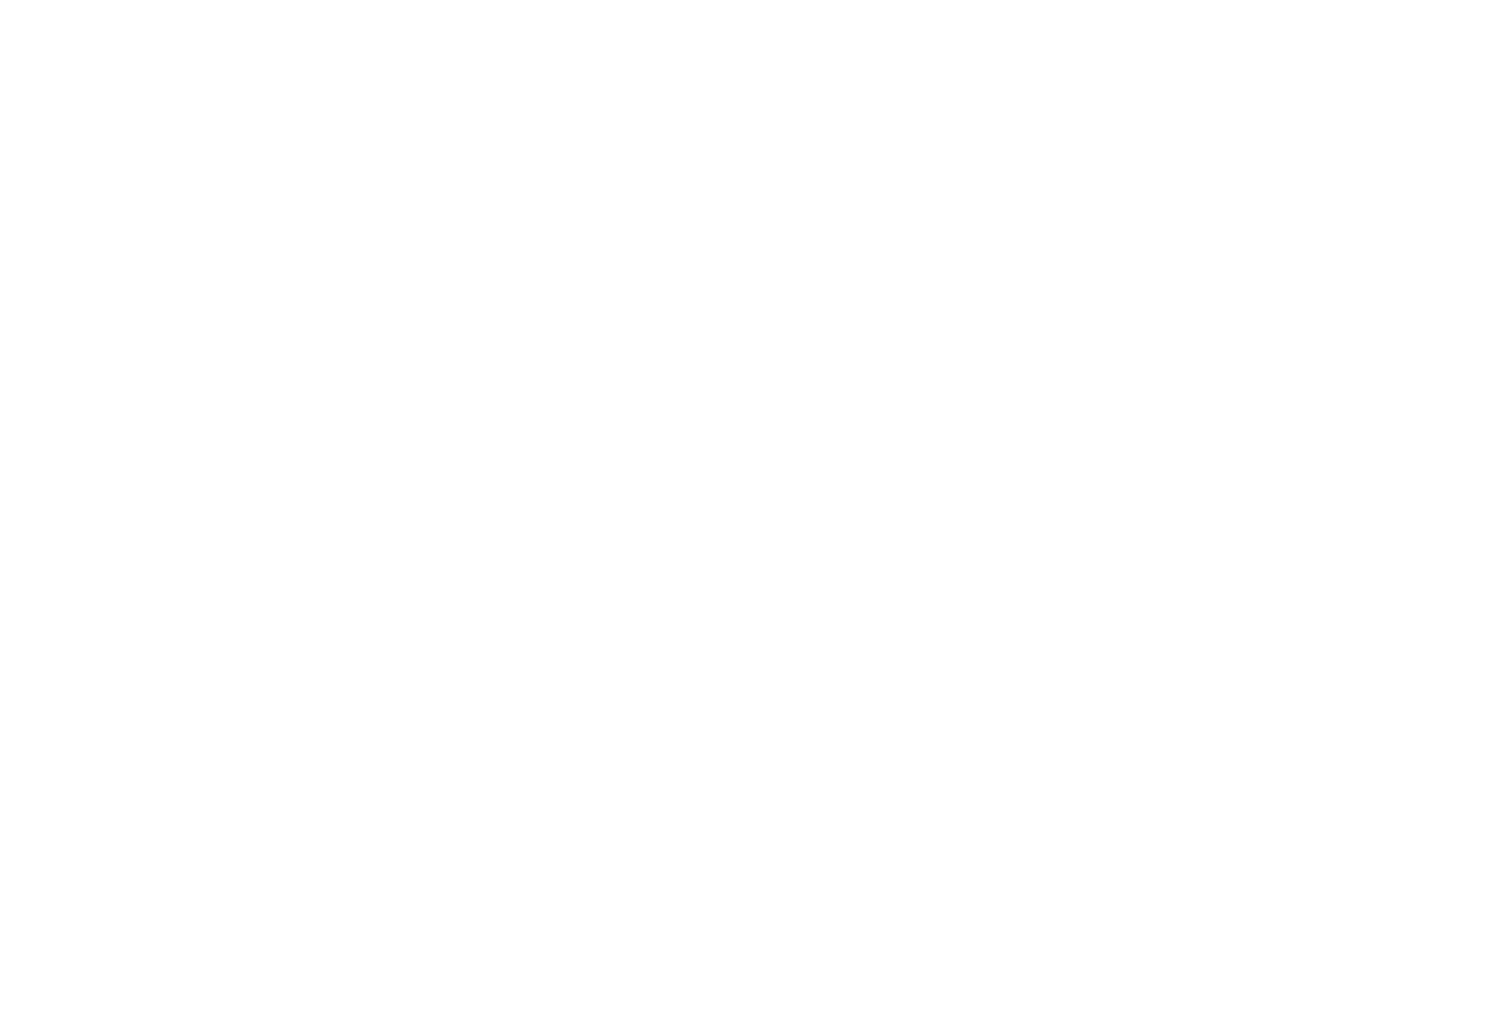 Kate Dawson Events